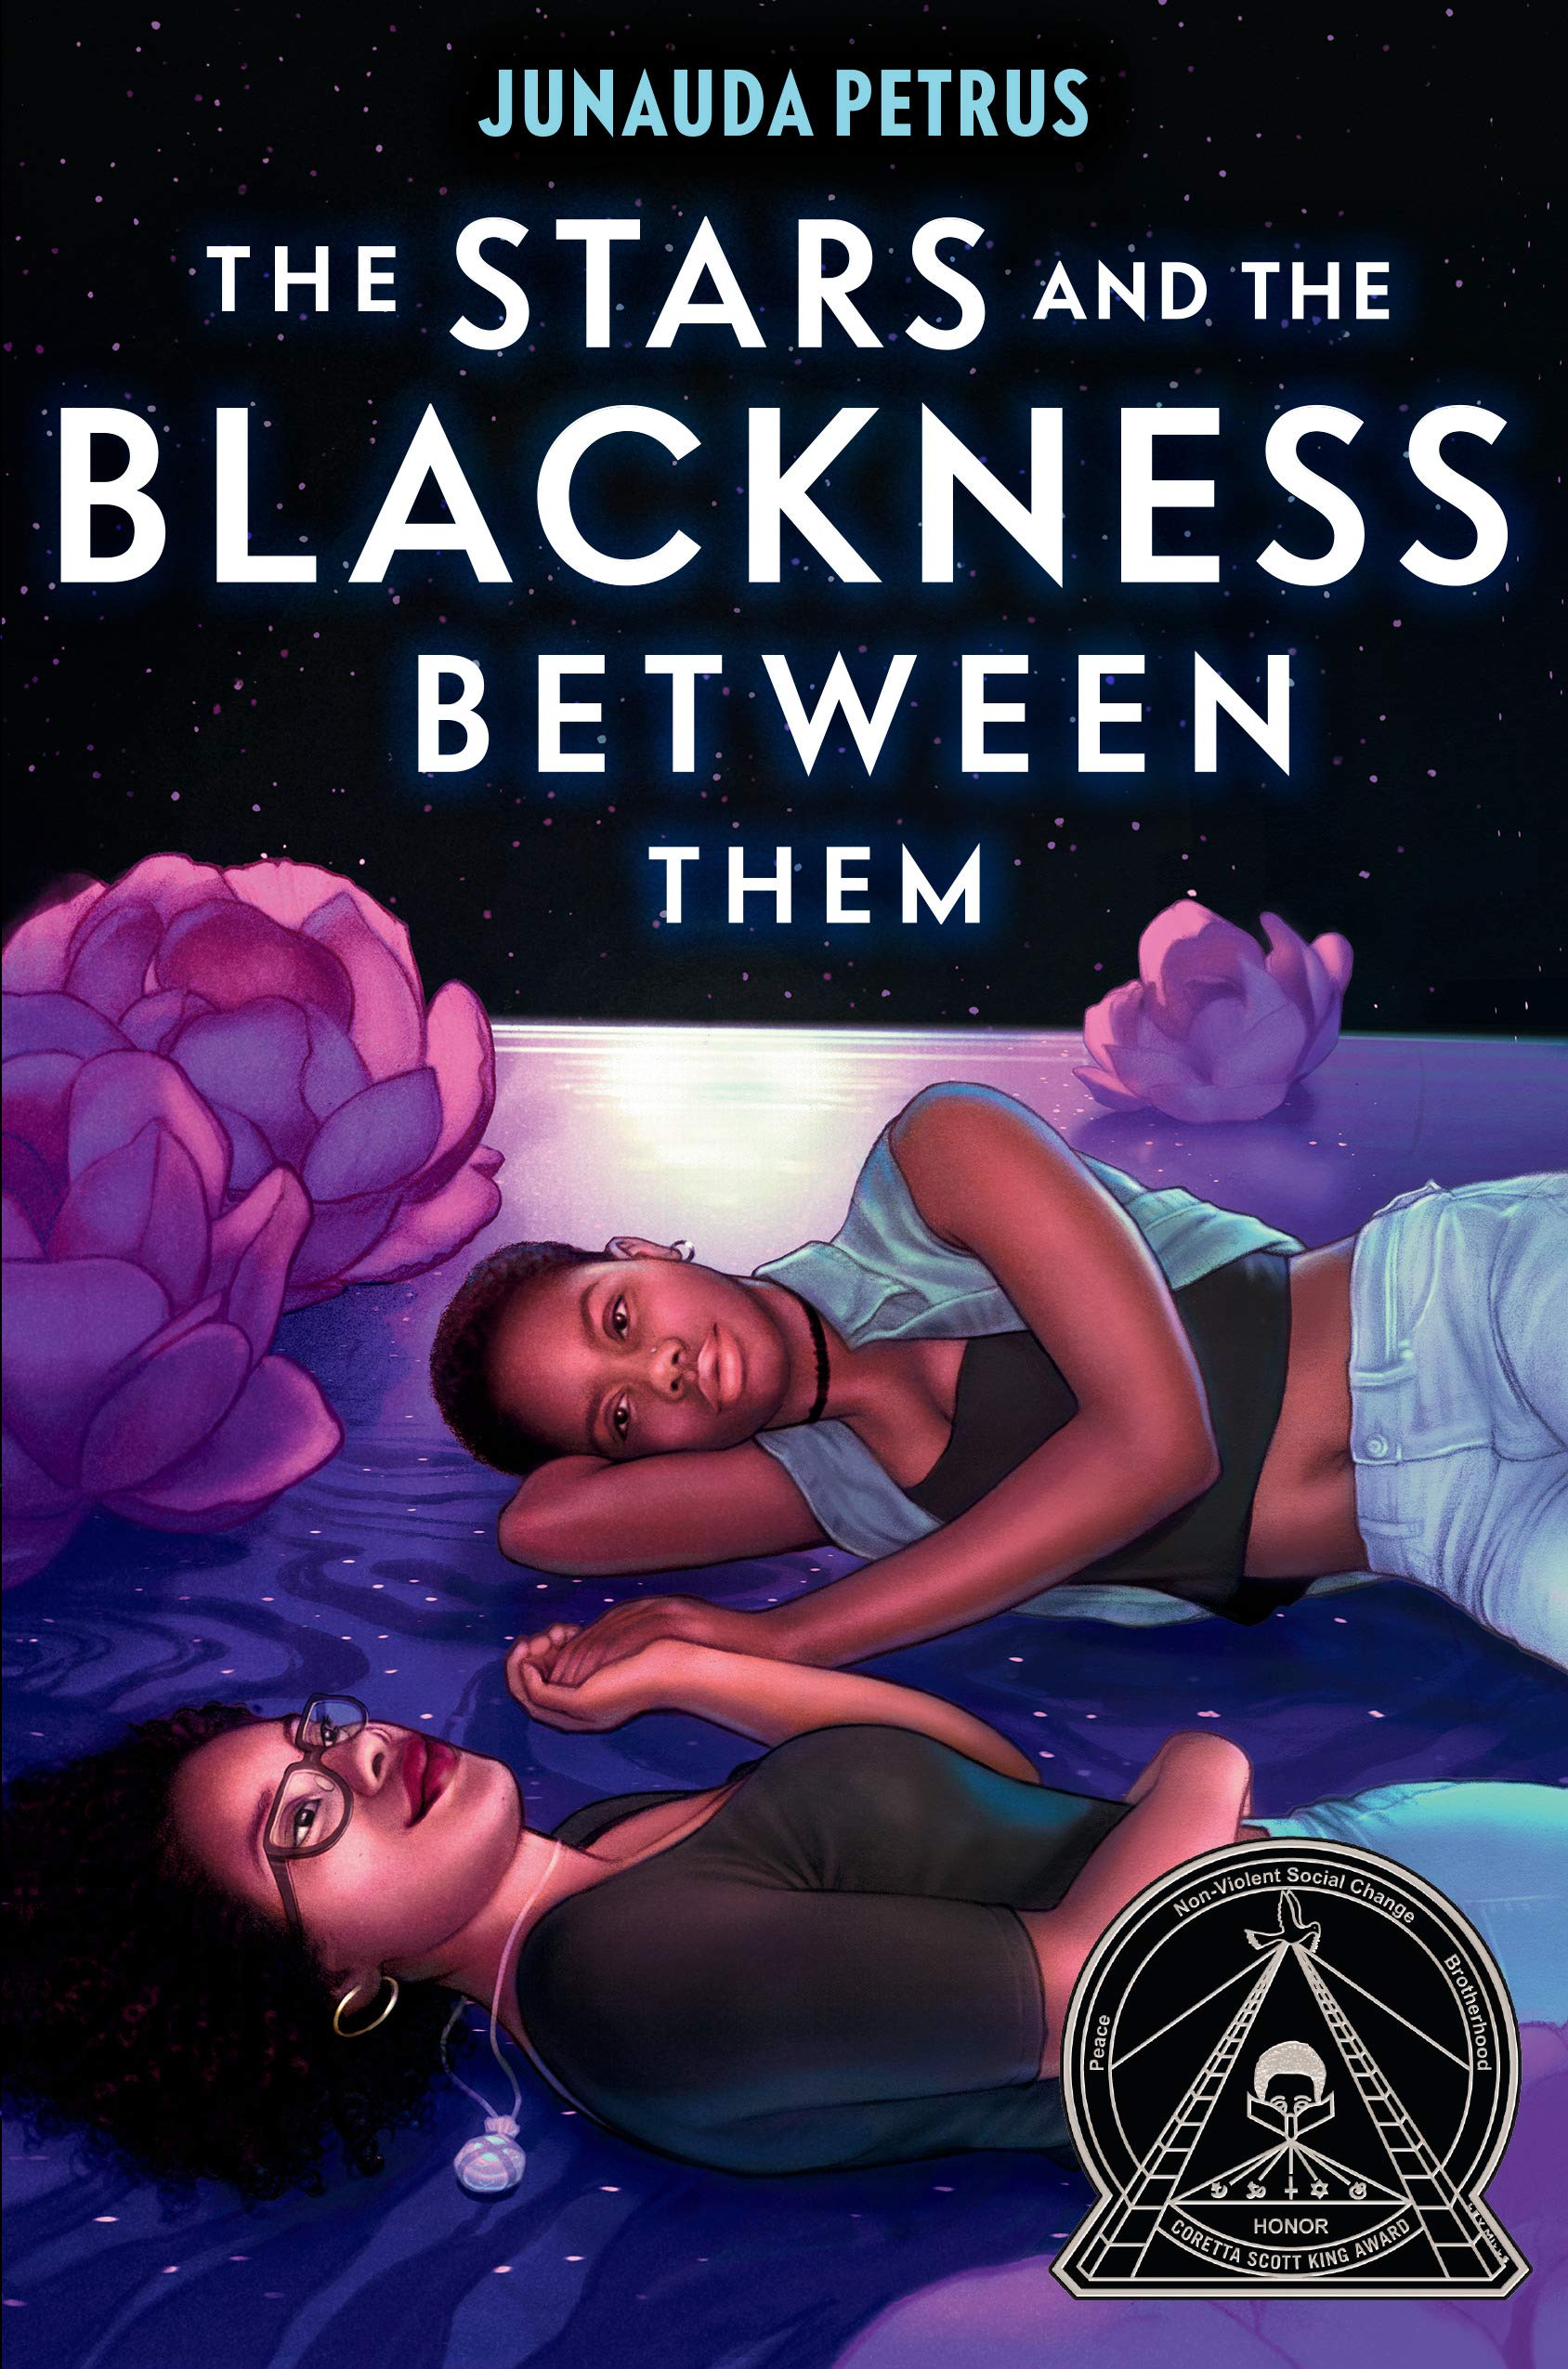 Amazon.com: The Stars and the Blackness Between Them ...